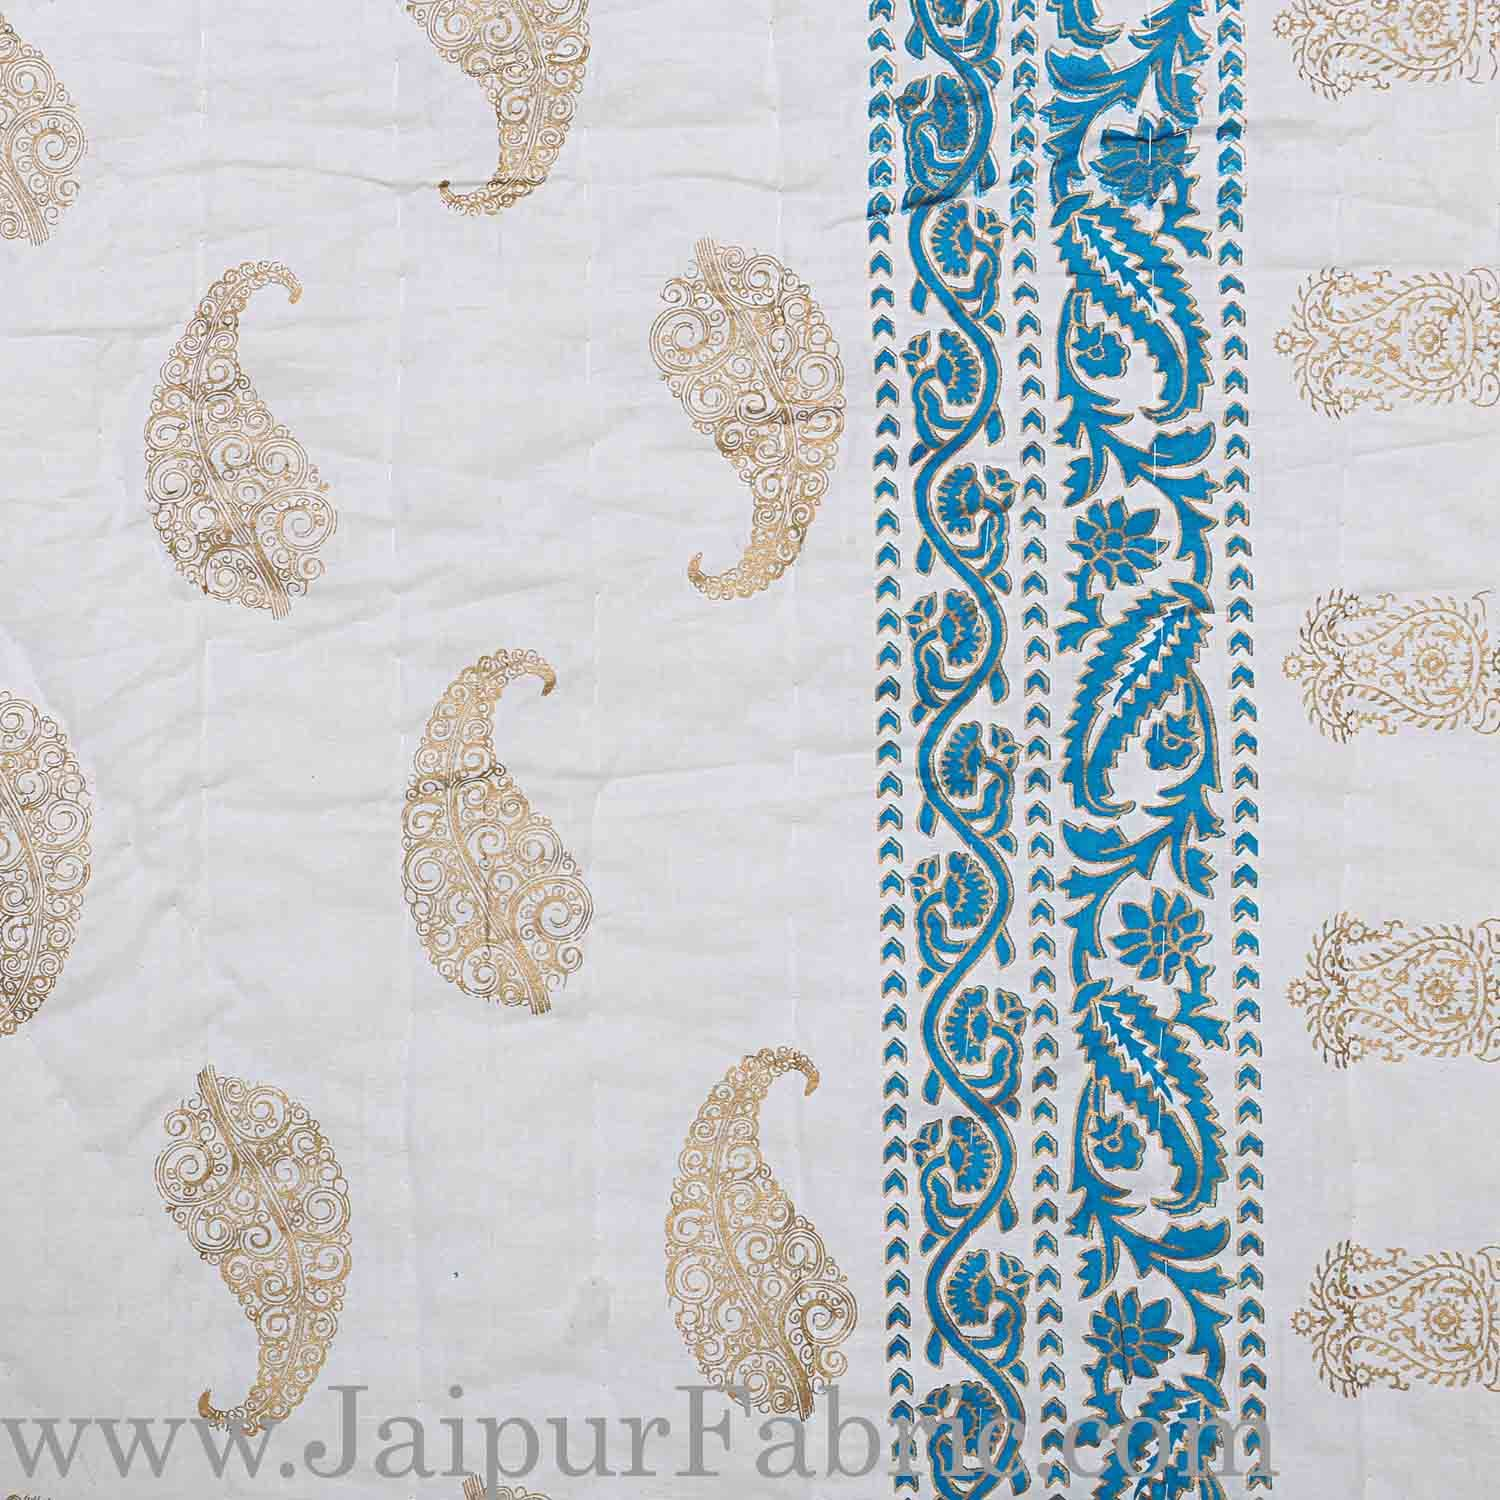 Jaipuri Printed Double Bed Razai Golden  Blue White base with Paisley pattern